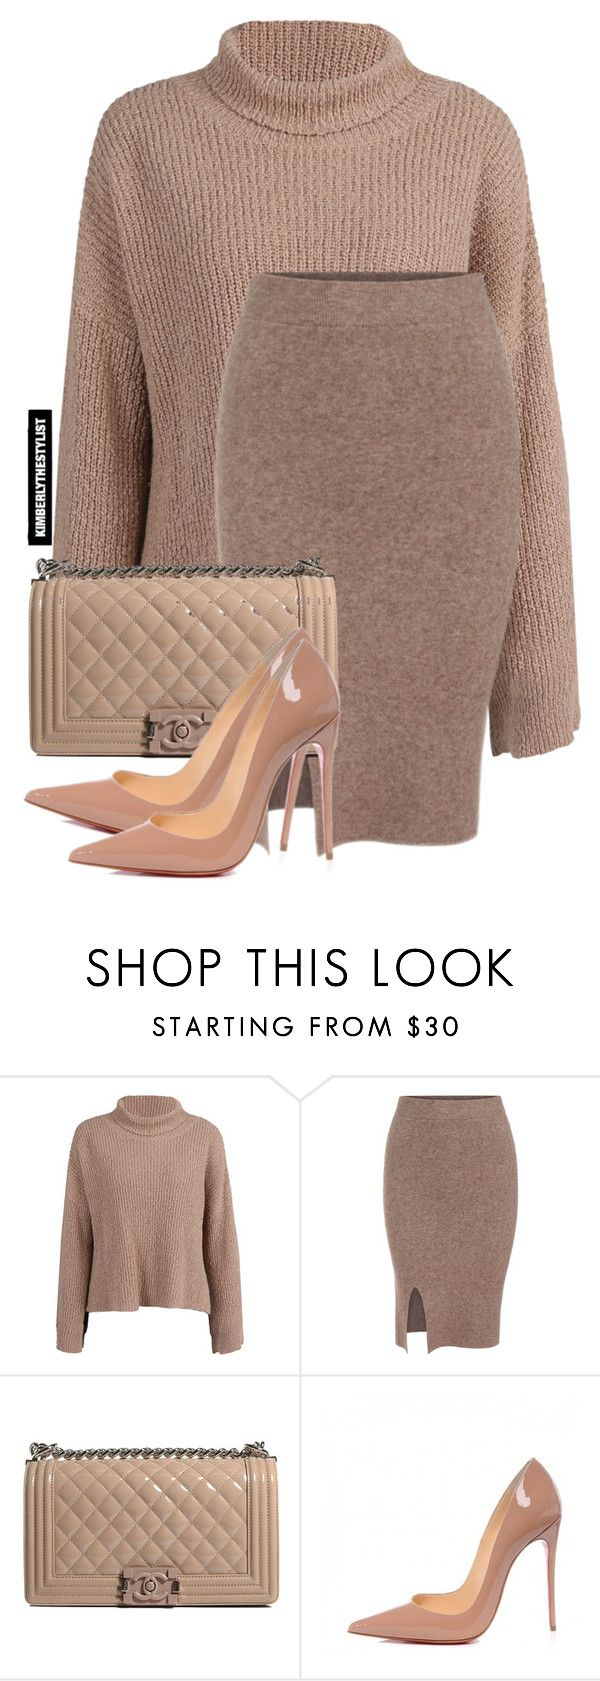 """""""Untitled #2108"""" by kimberlythestylist ❤ liked on Polyvore featuring Chanel and Christian Louboutin"""